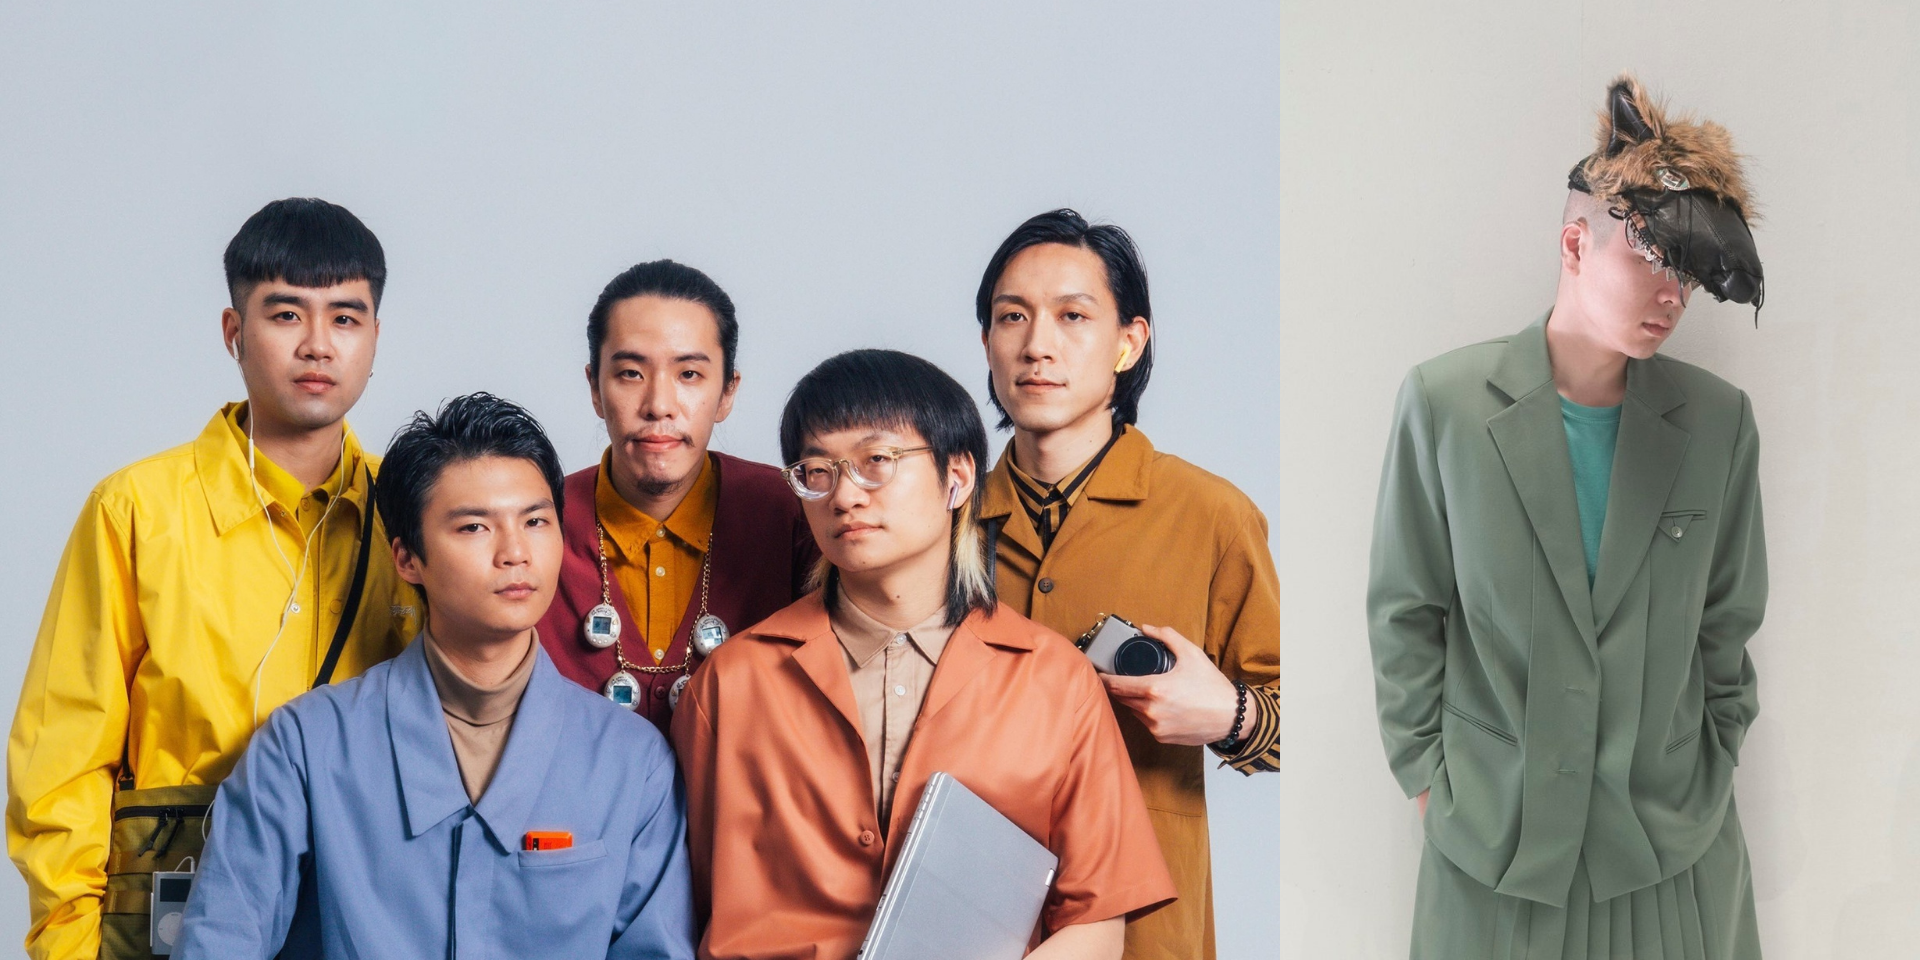 Sunset Rollercoaster announce new album SOFT STORM, team up with HYUKOH's Oh Hyuk on latest track 'Candlelight'  – watch